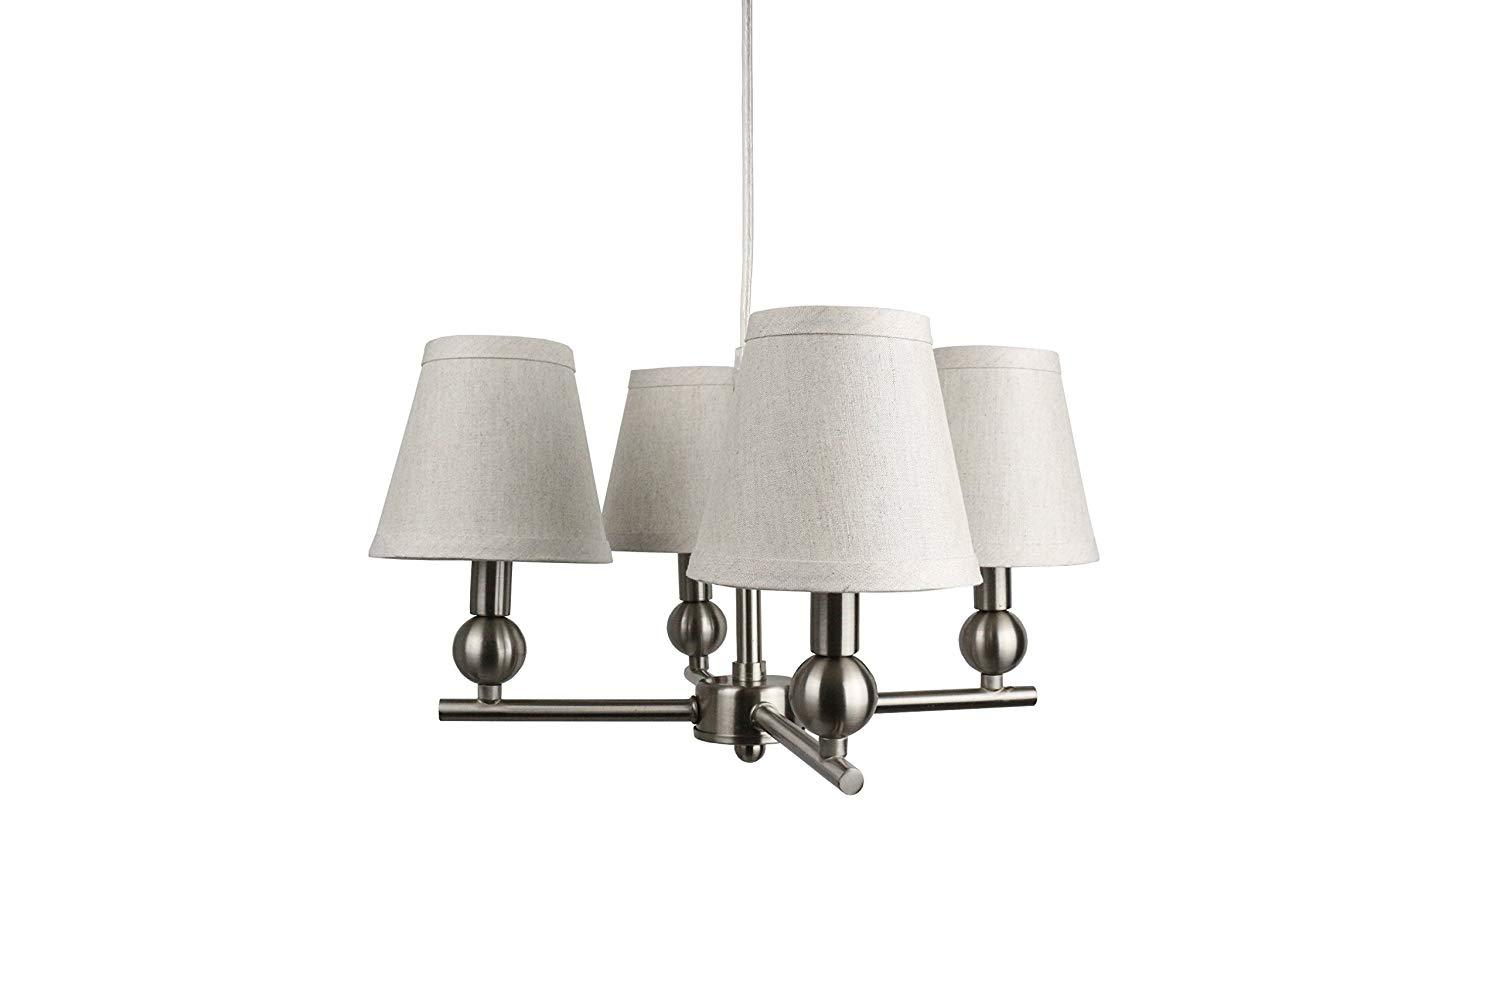 Portable Zio 4-Light Chandelier with Oatmeal Linen Shades